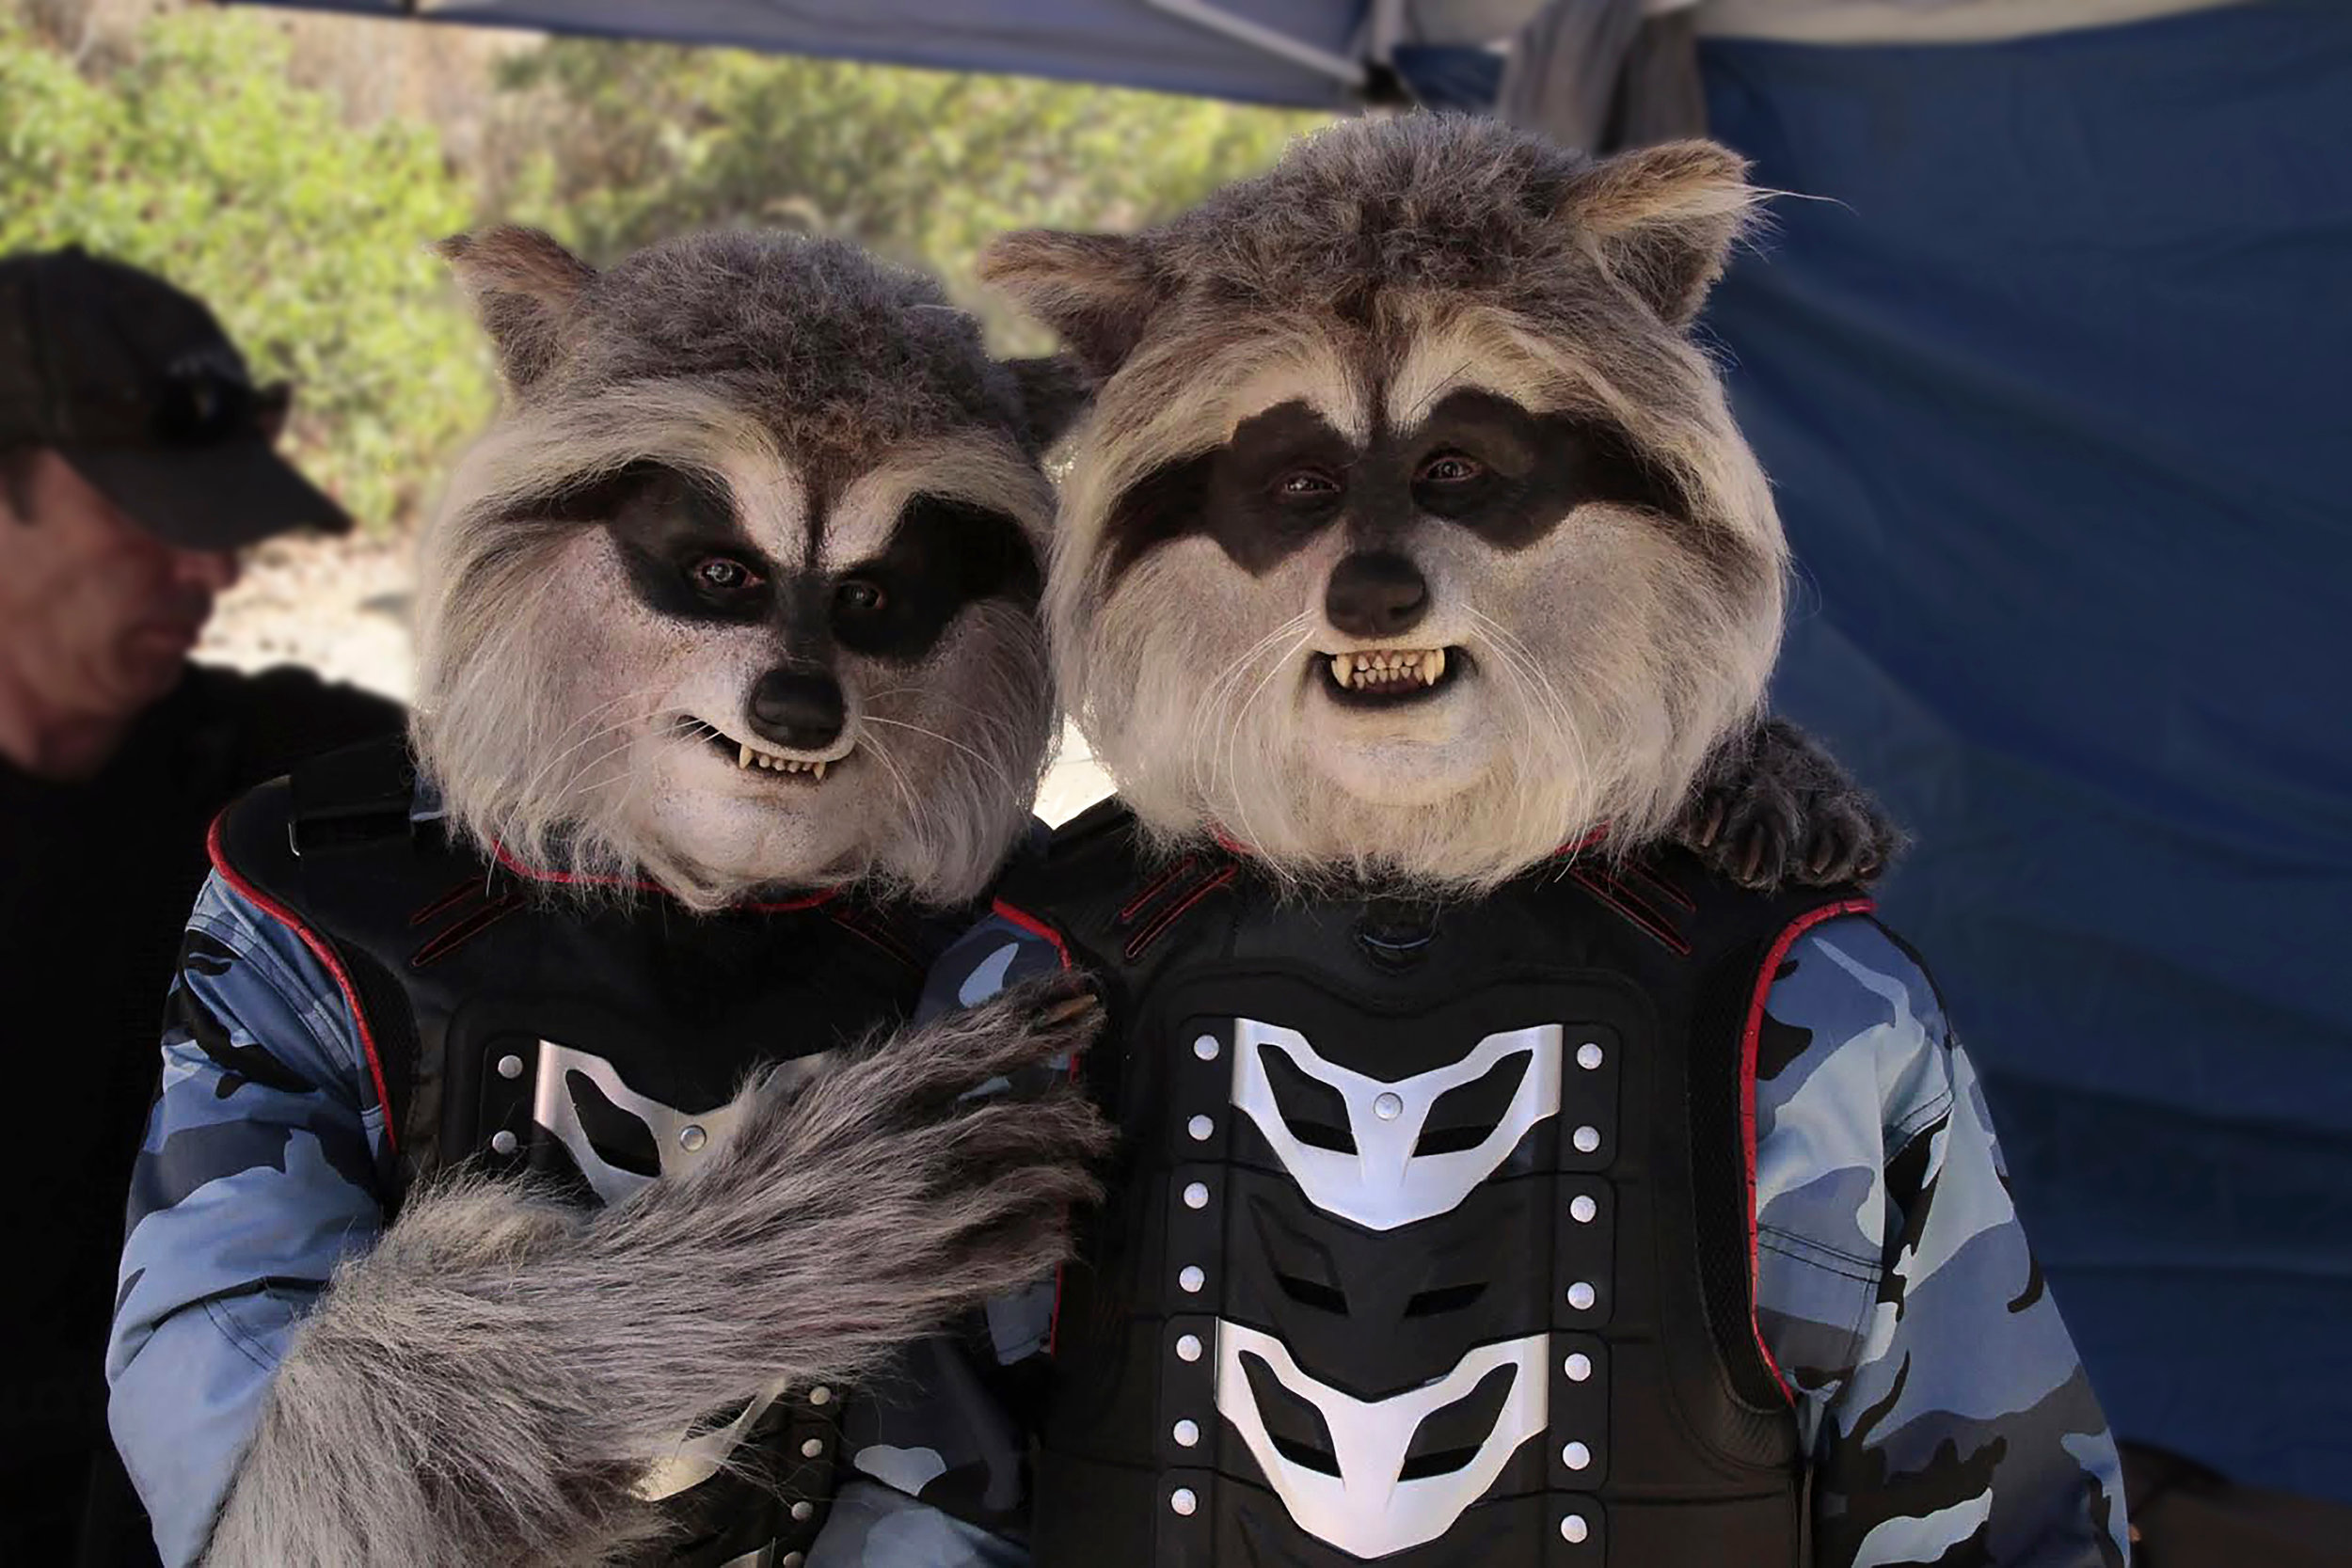 """John alexander and david st. pierre donned these """"mutant raccoon"""" soldier suits for a disney tv show"""